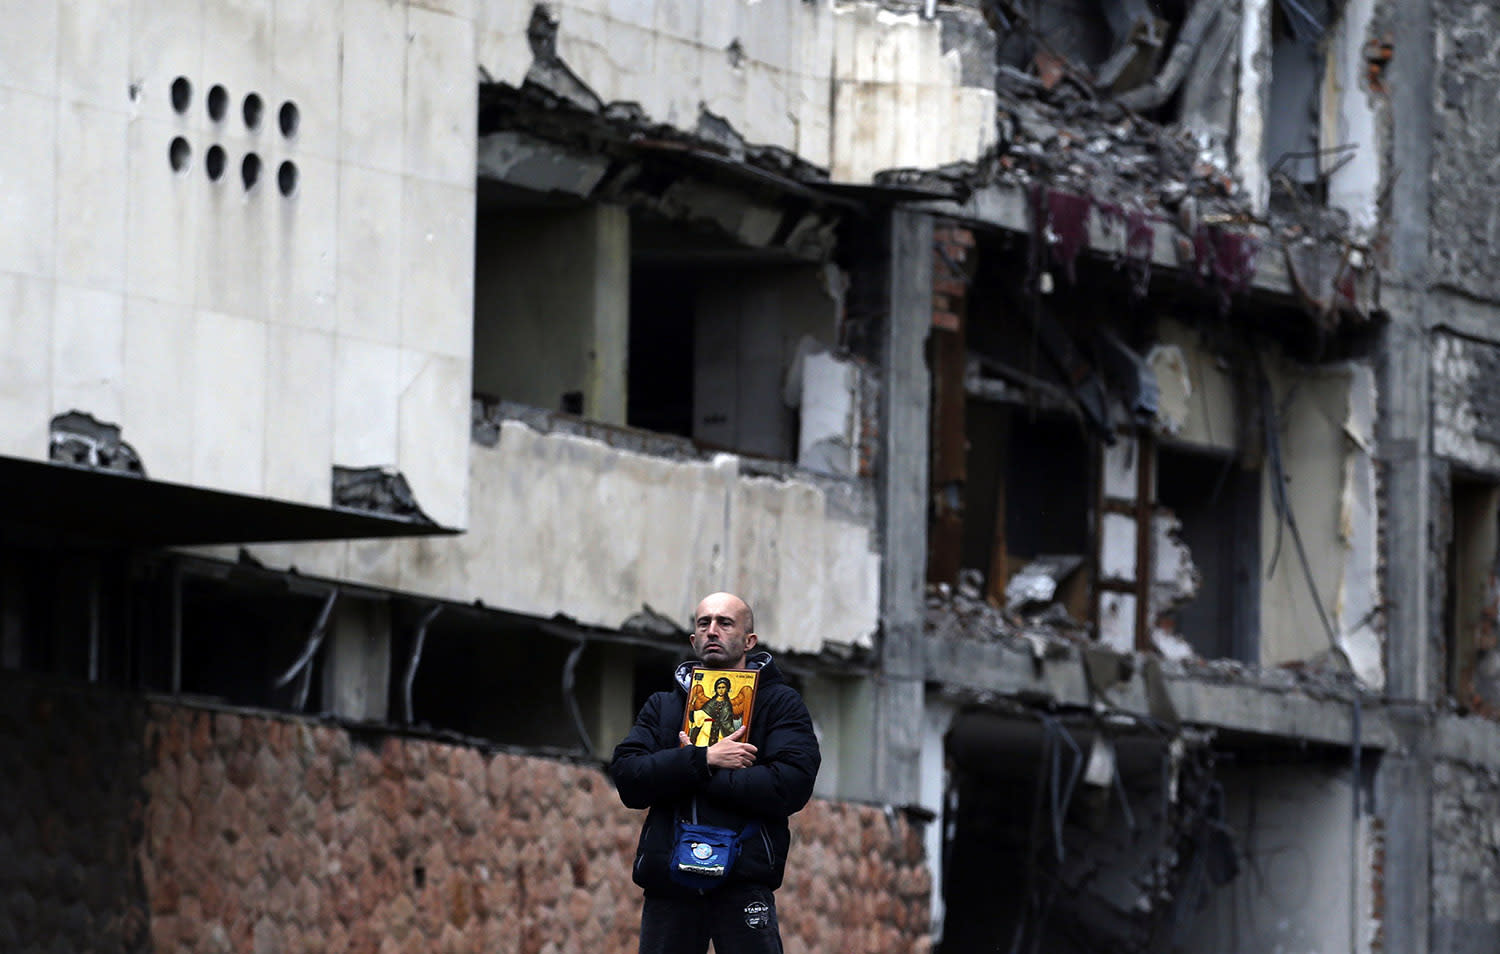 <p>A man holds an icon and stands in front of the destroyed former Yugoslav army headquarters, during a protest in Belgrade, Serbia, April 8, 2017. Thousands of people are blowing whistles and banging pots outside the Serbian government headquarters to protest the election of powerful Prime Minister Aleksandar Vucic as the country's new president. (Photo: Darko Vojinovic/AP) </p>